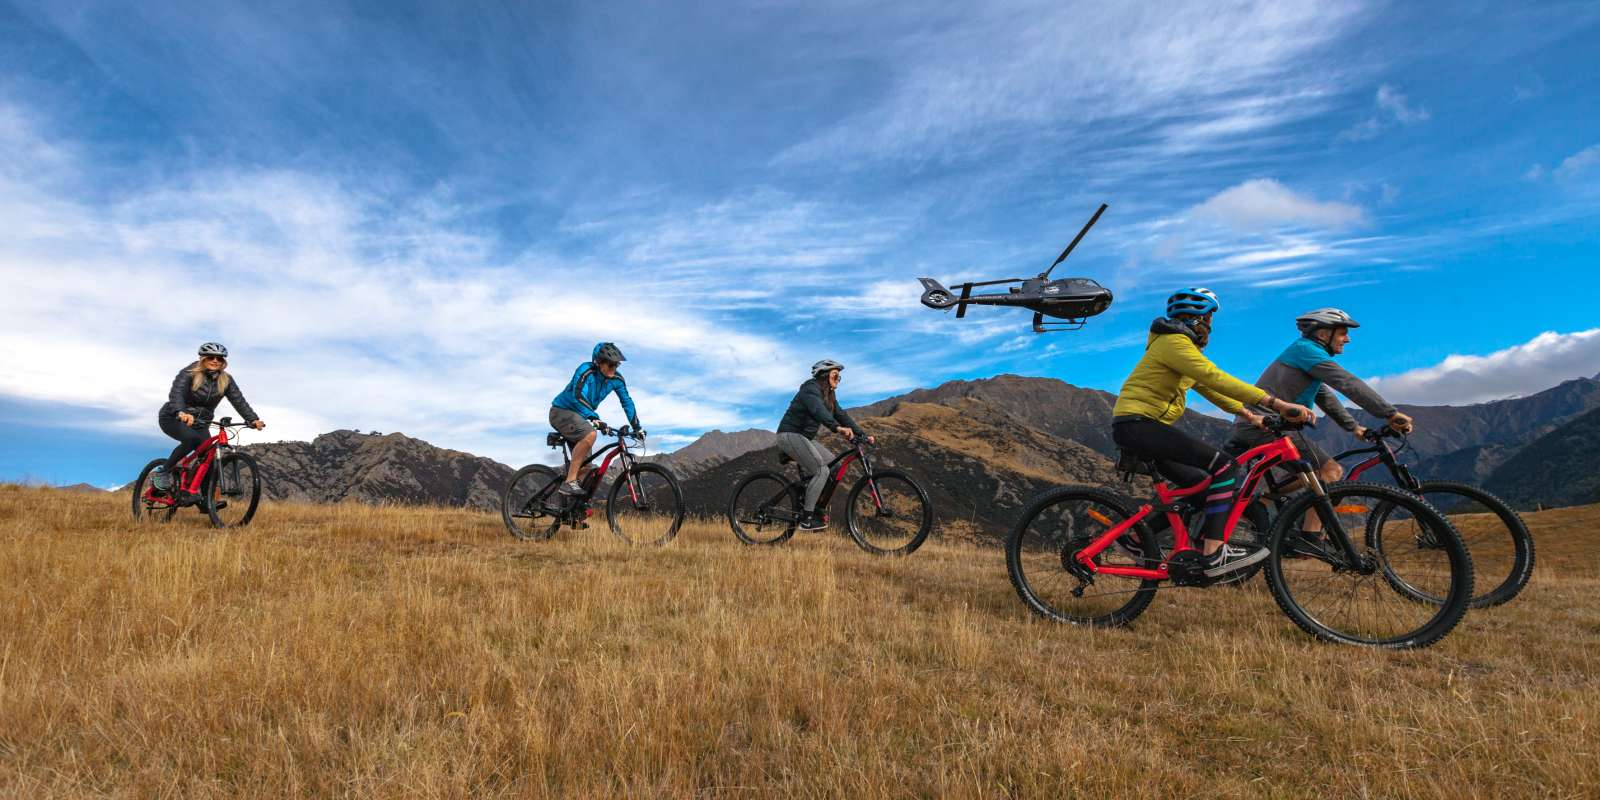 join a heli-ebiking adventure combining the thrill of a helicopter ride with riding in a high country farm